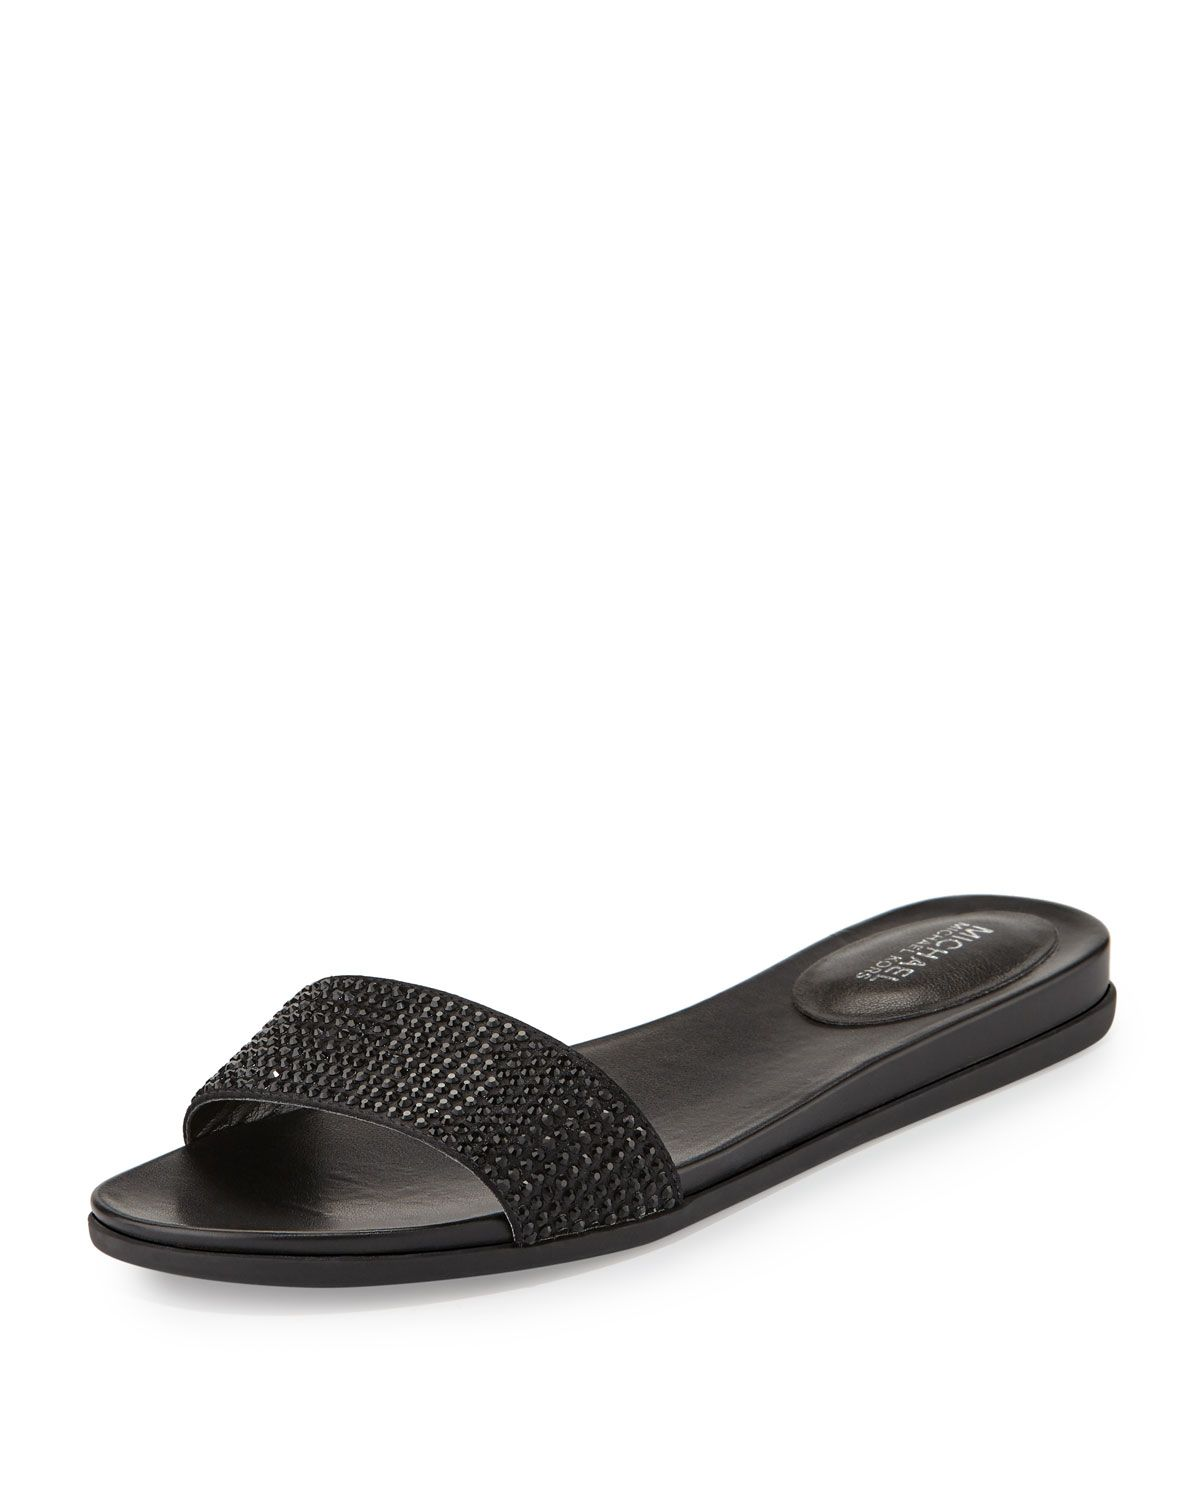 MICHAEL Michael Kors Eleanor Crystal Flat Slide Sandal, Black